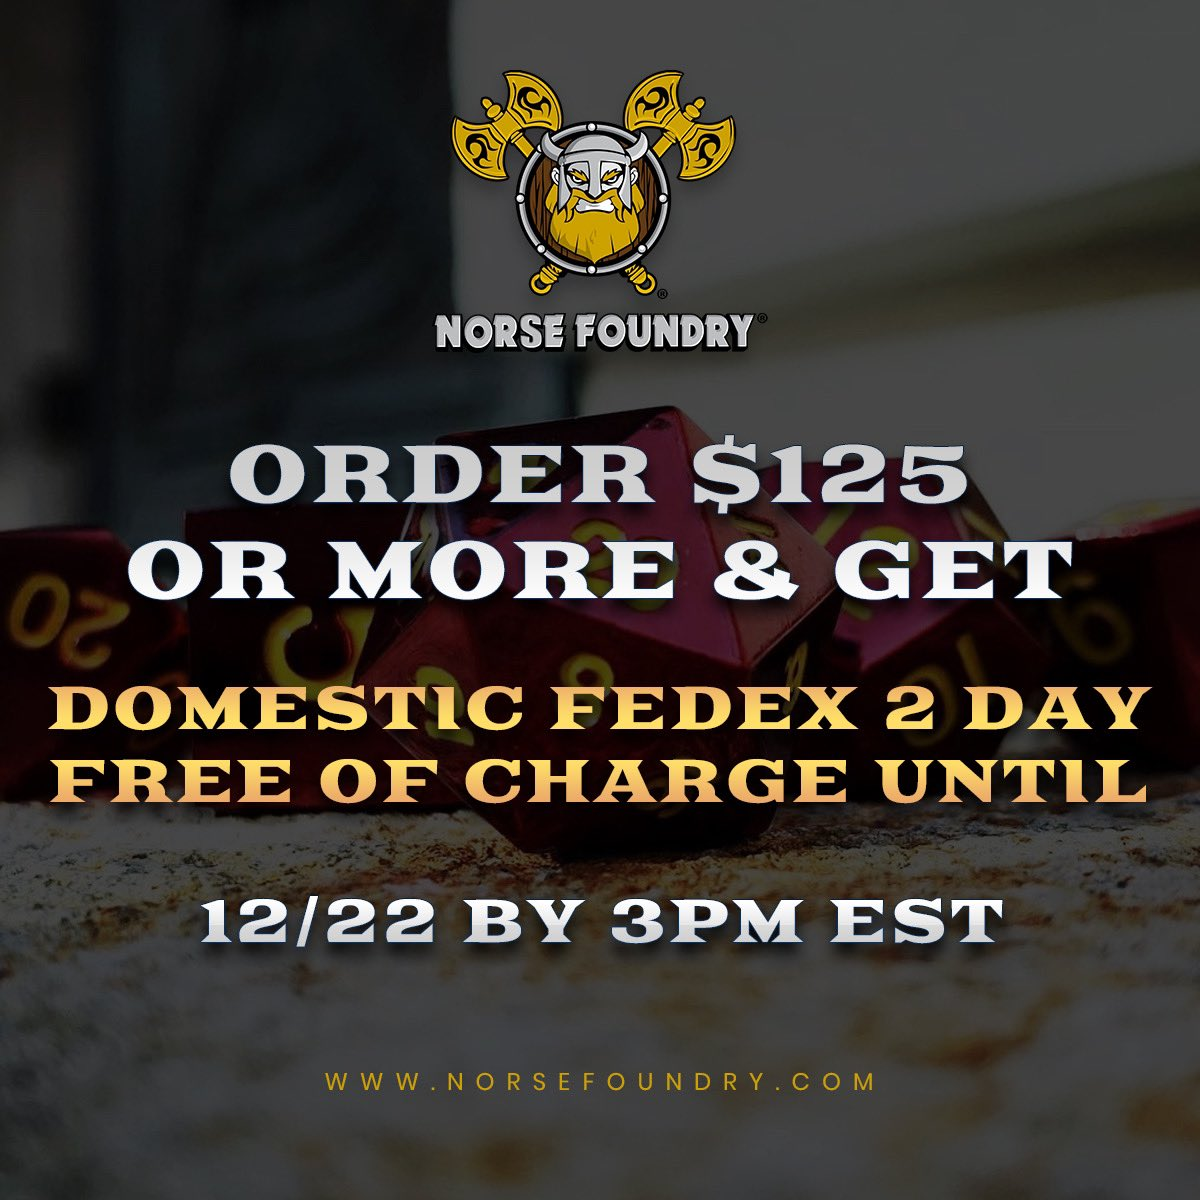 Norse Foundry Norsefoundry Twitter We seek to enhance your gaming experience & provide quality accessories to invoke imagination & memorable moments. norse foundry norsefoundry twitter